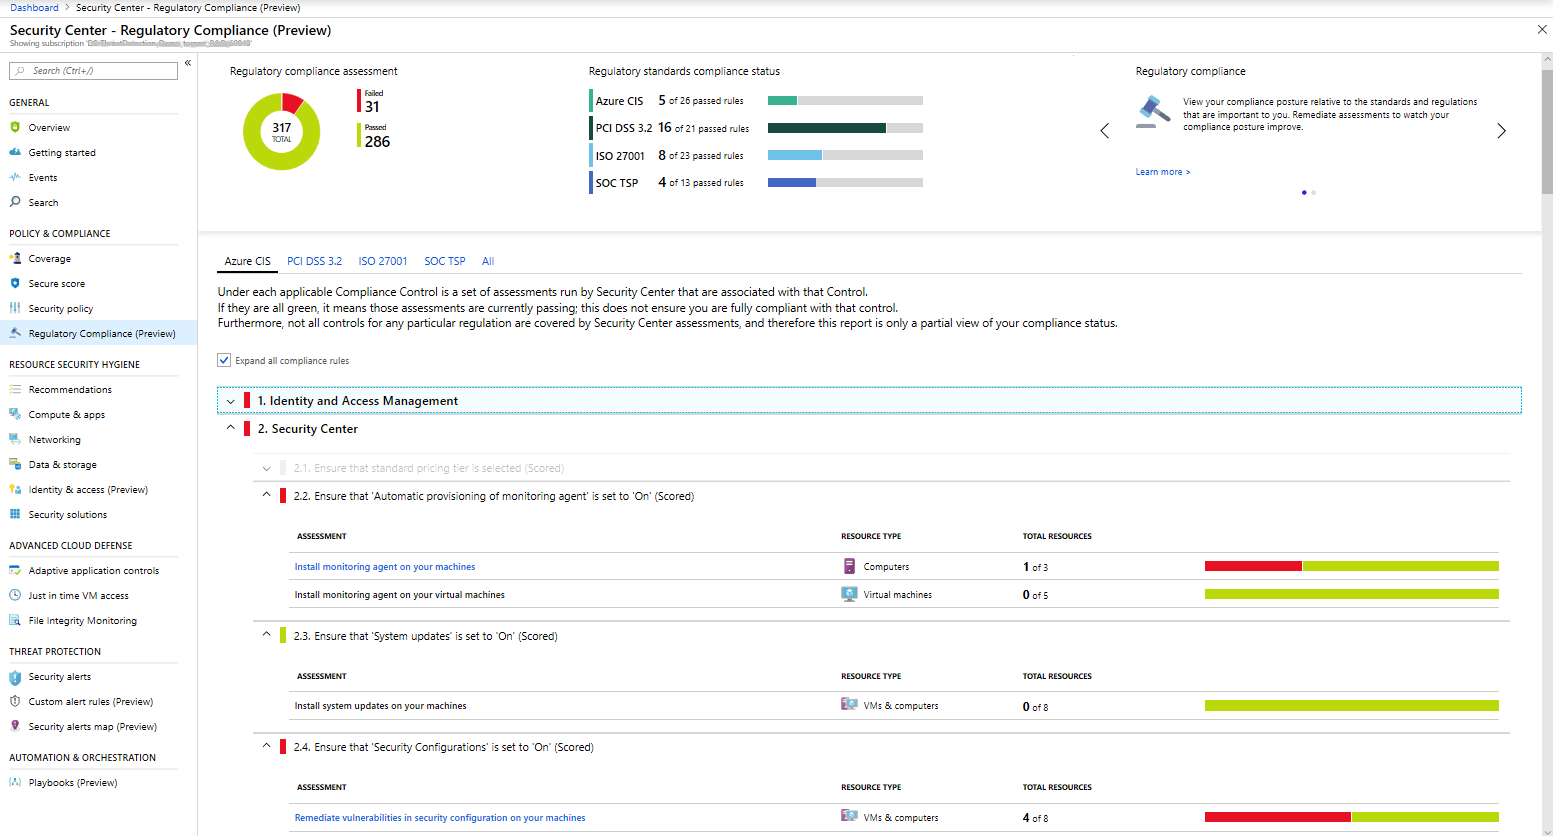 Azure Security Center regulartory compliance dashboard screenshot